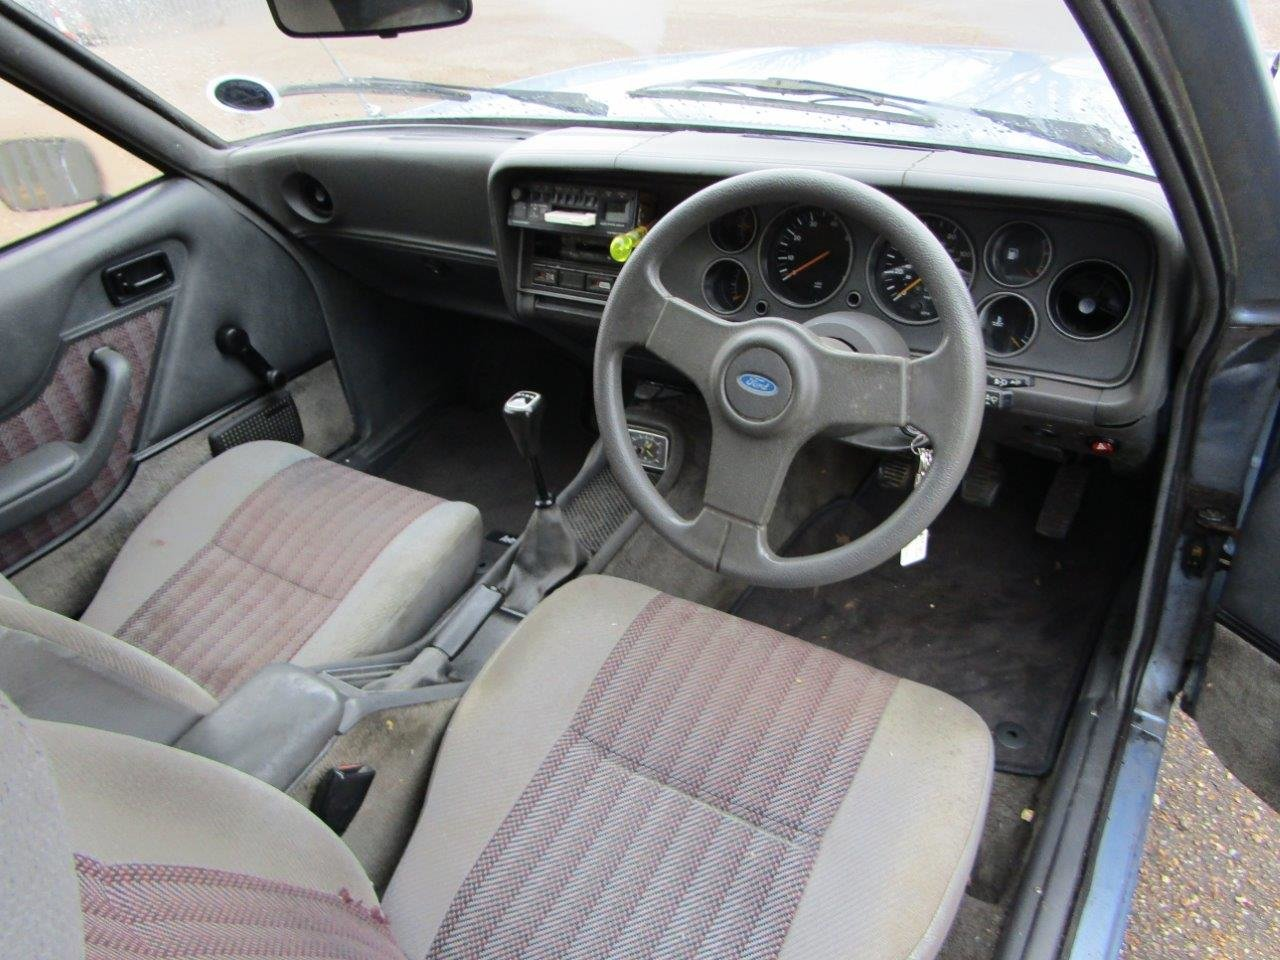 1986 Ford Capri 1.6 Laser at ACA 27th and 28th February For Sale by Auction (picture 8 of 11)